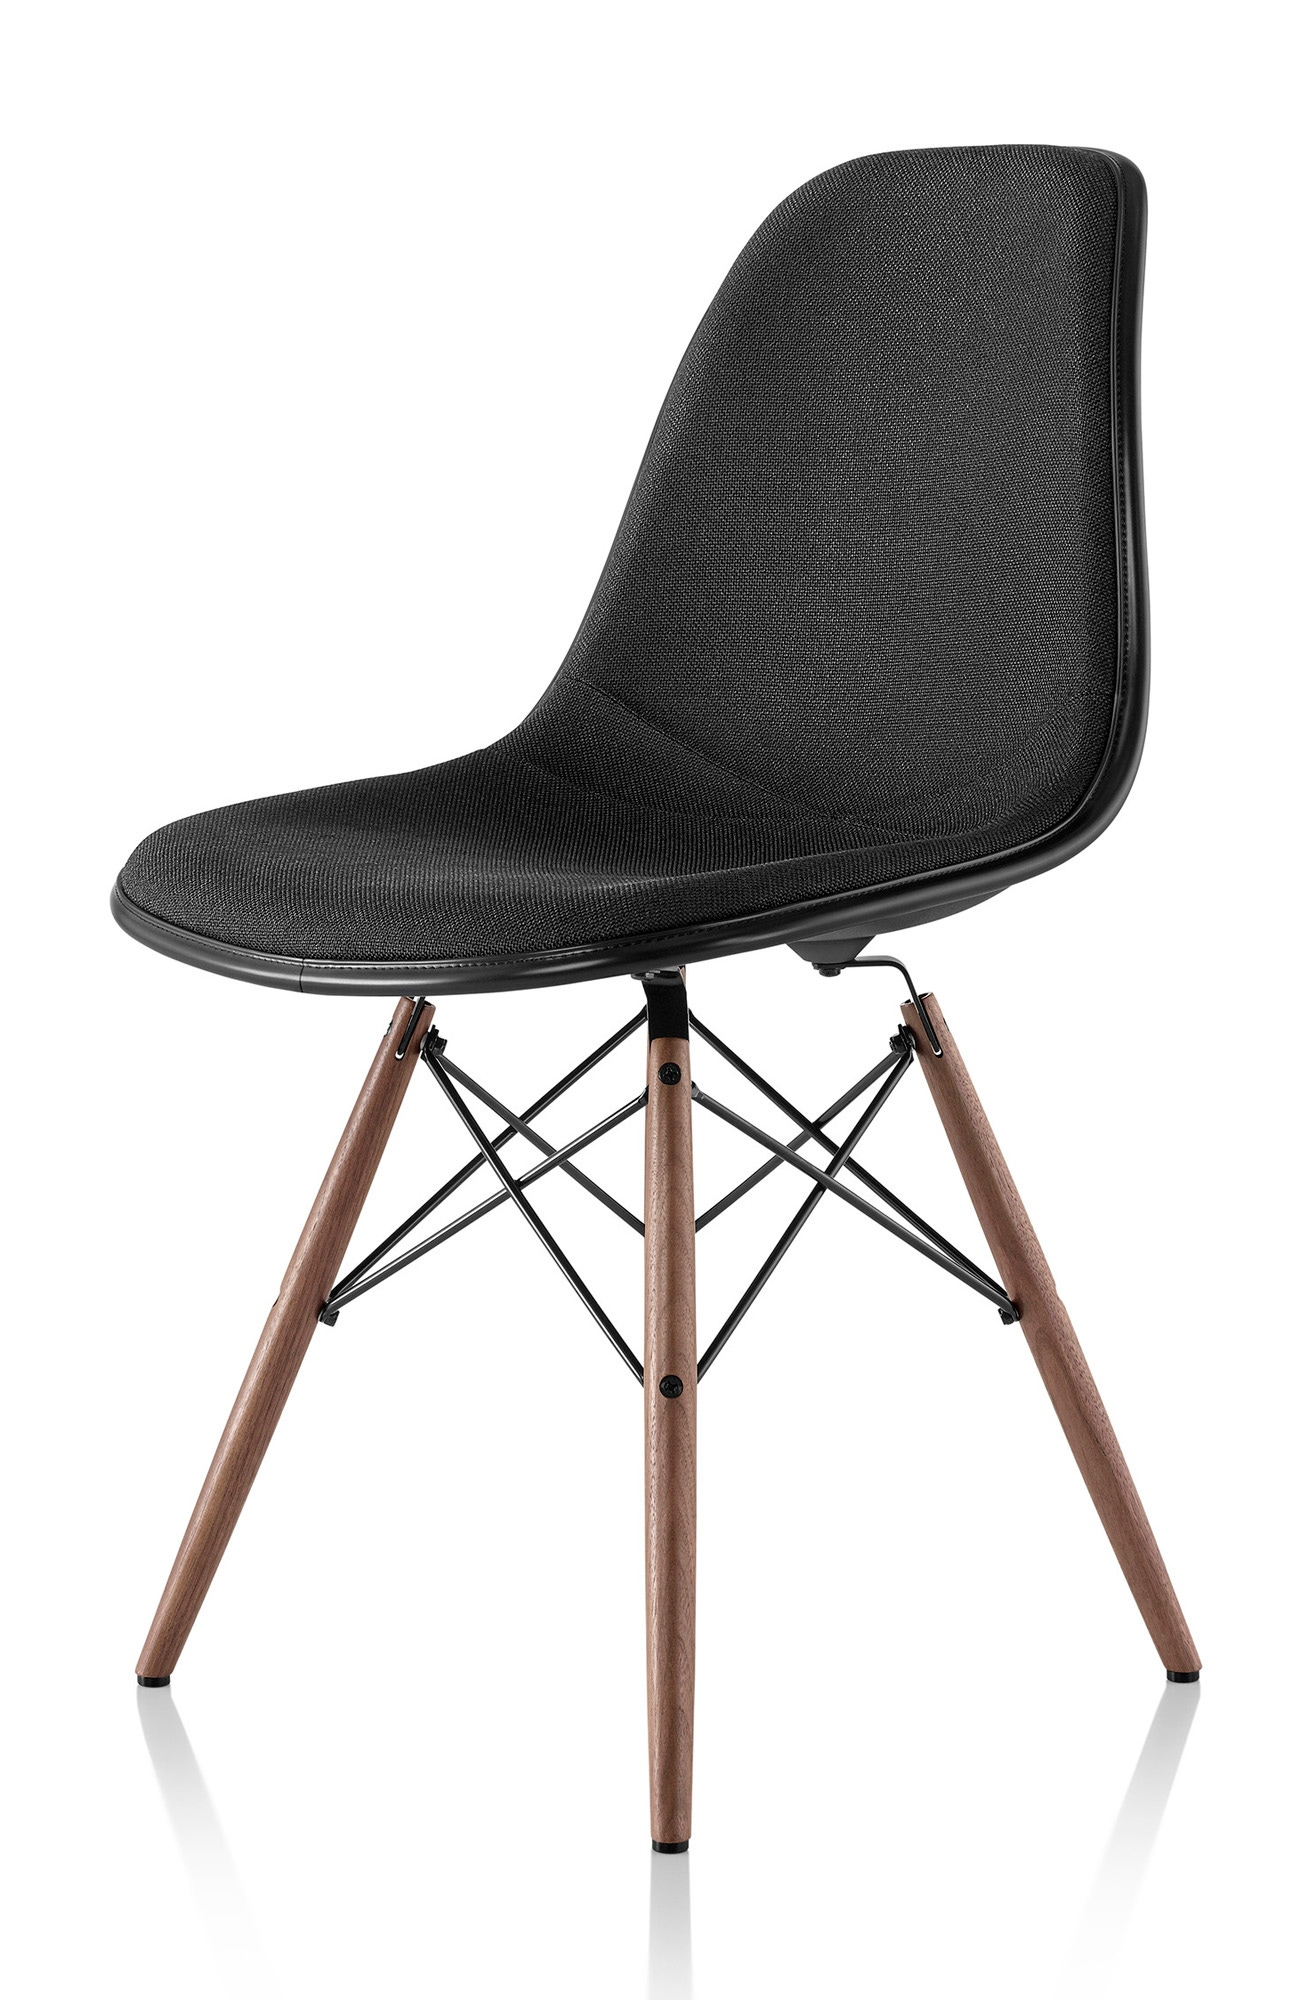 herman miller eames molded plastic side chair upholstered. Black Bedroom Furniture Sets. Home Design Ideas